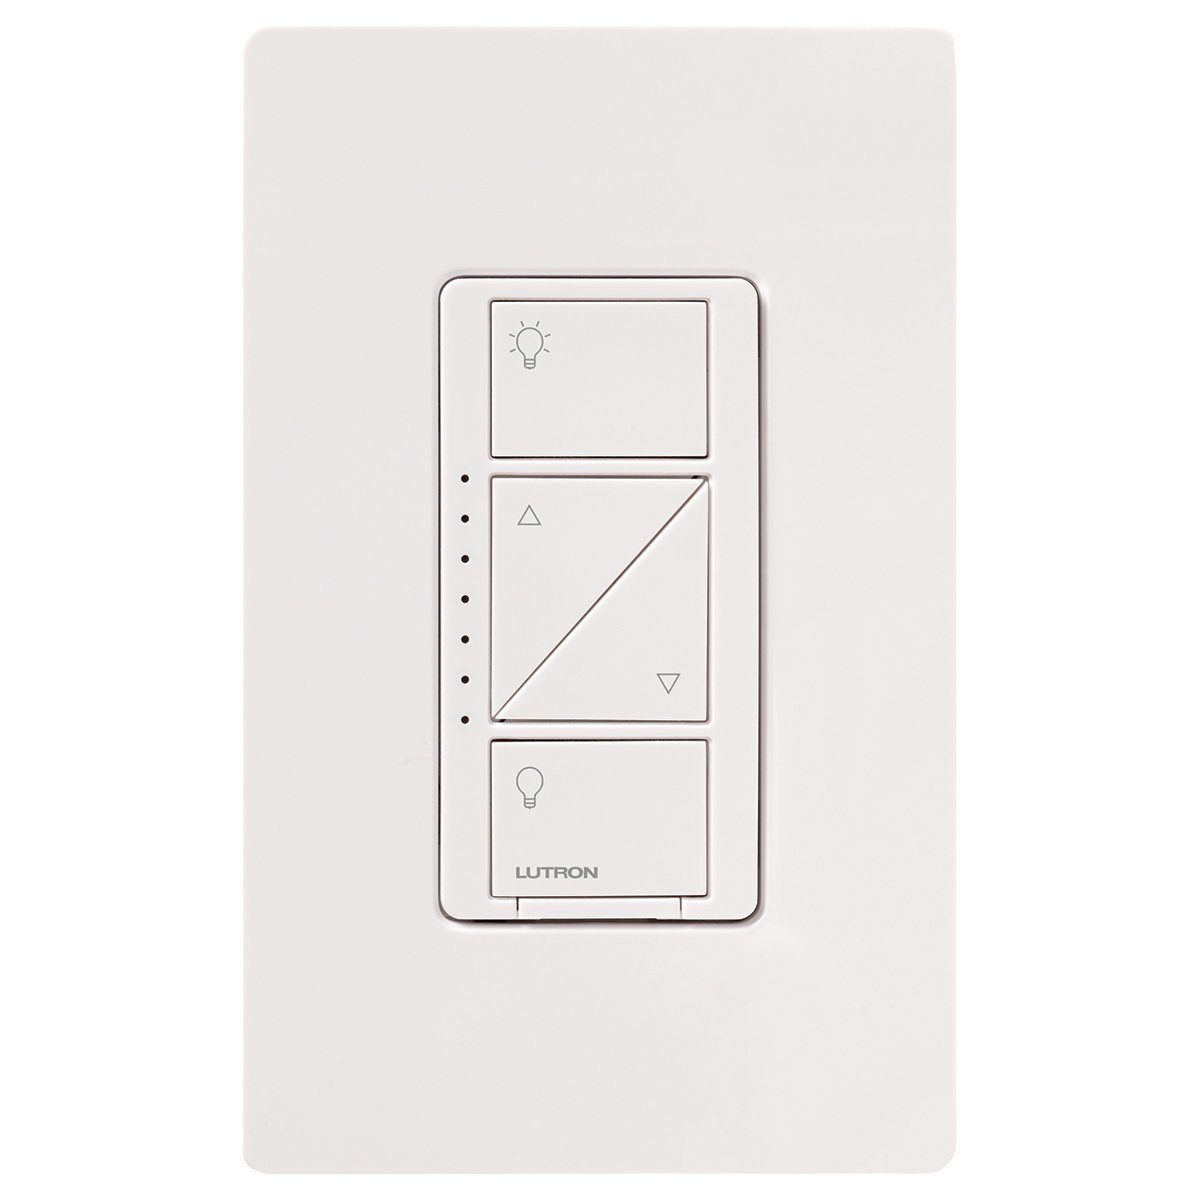 Lutron Lighting Wiring Diagram How To Add Your Existing Lights And Fans To Your Homekit